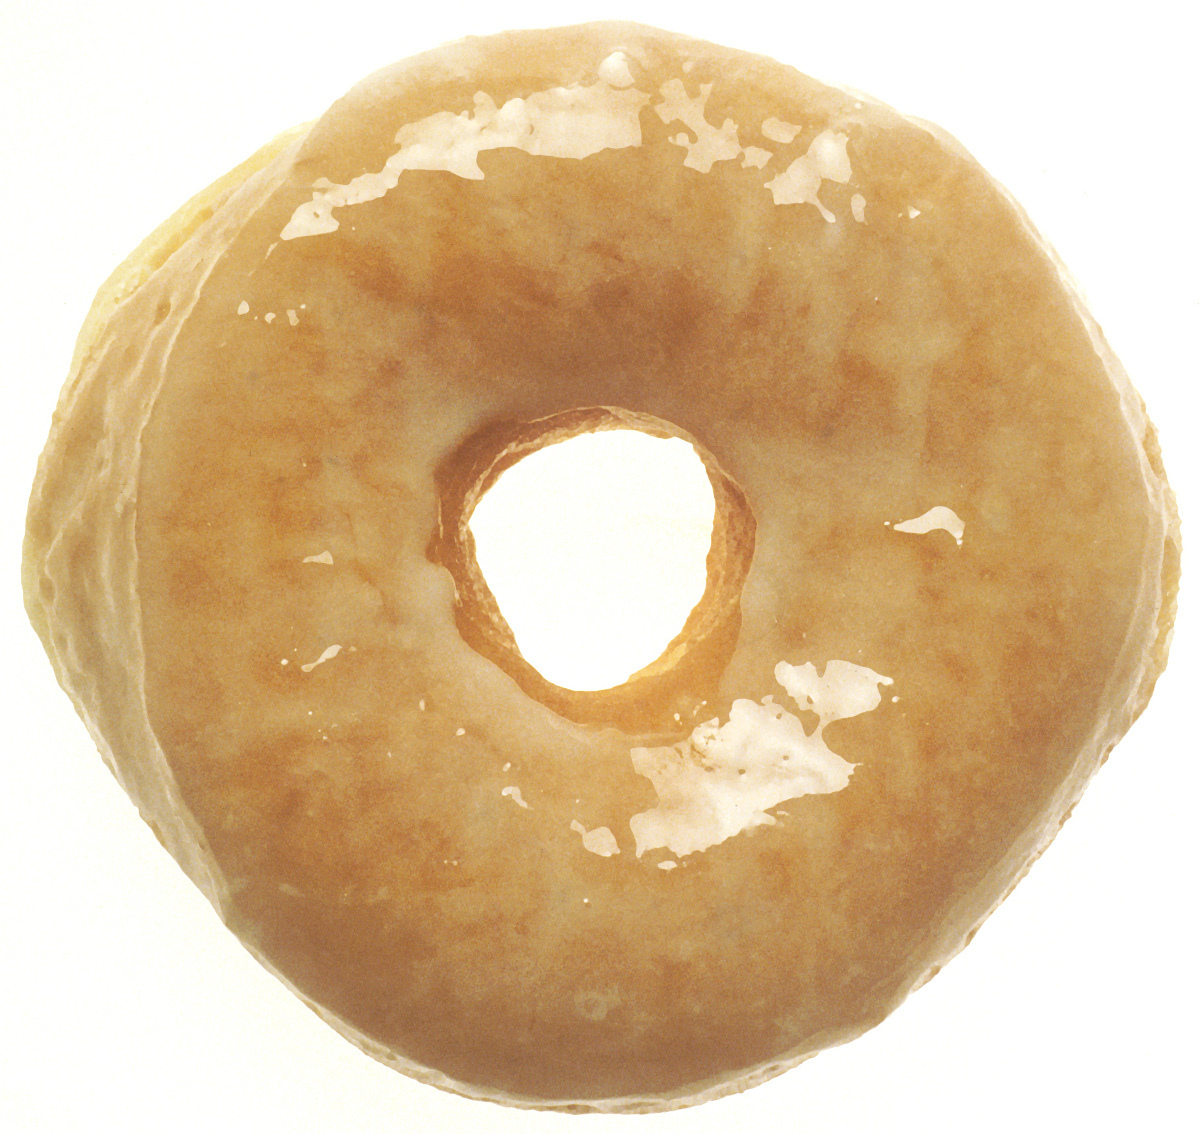 Frosted donut clipart.